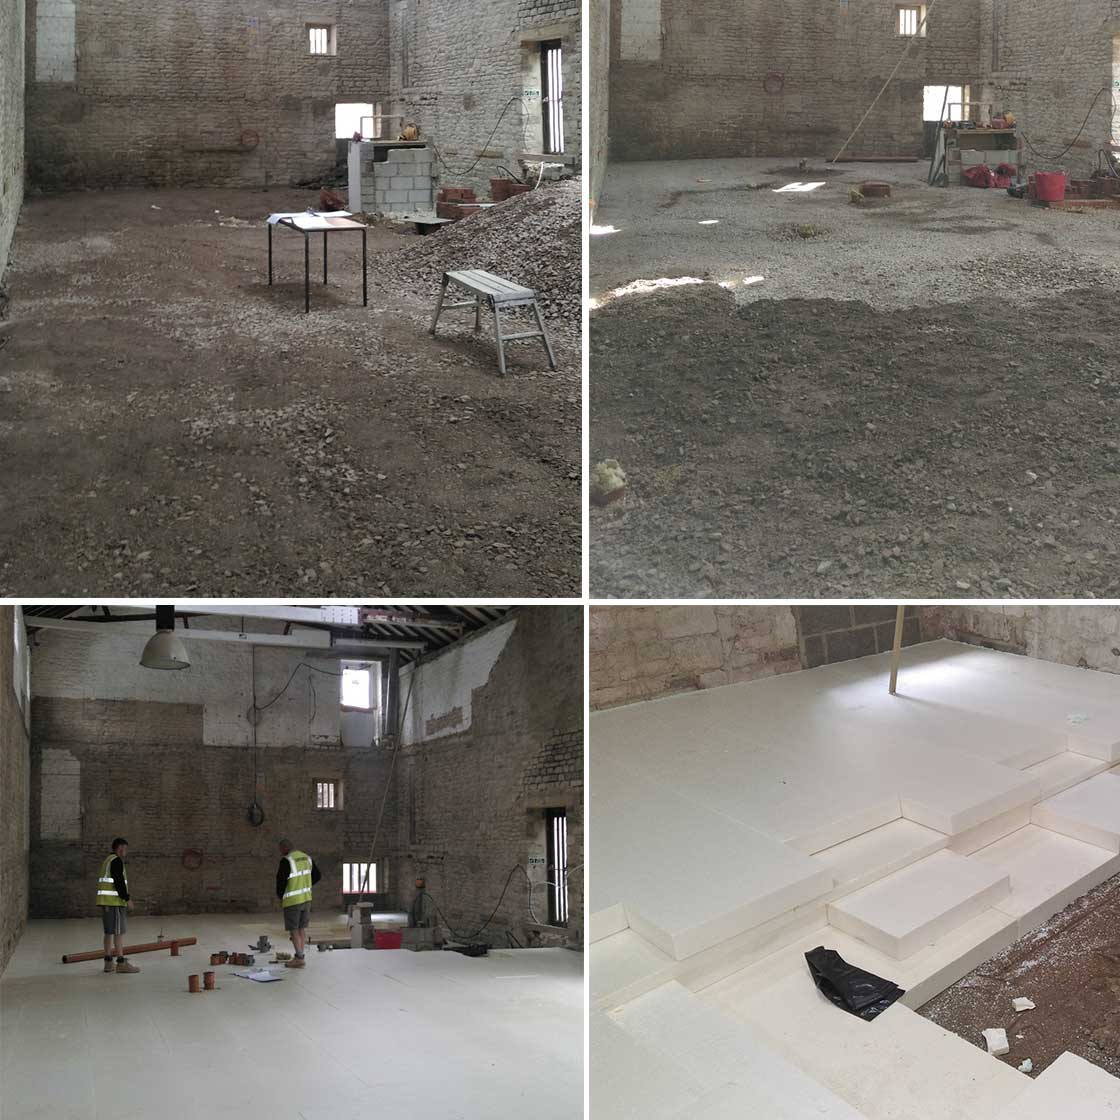 The decision was taken to change the floor levels and install an insulated slab, which would also help to thermally isolate the new three storey load bearing structure from the ground and walls. 230mm of Hexatherm XPS insulation was installed to deliver a U-value of 0.094